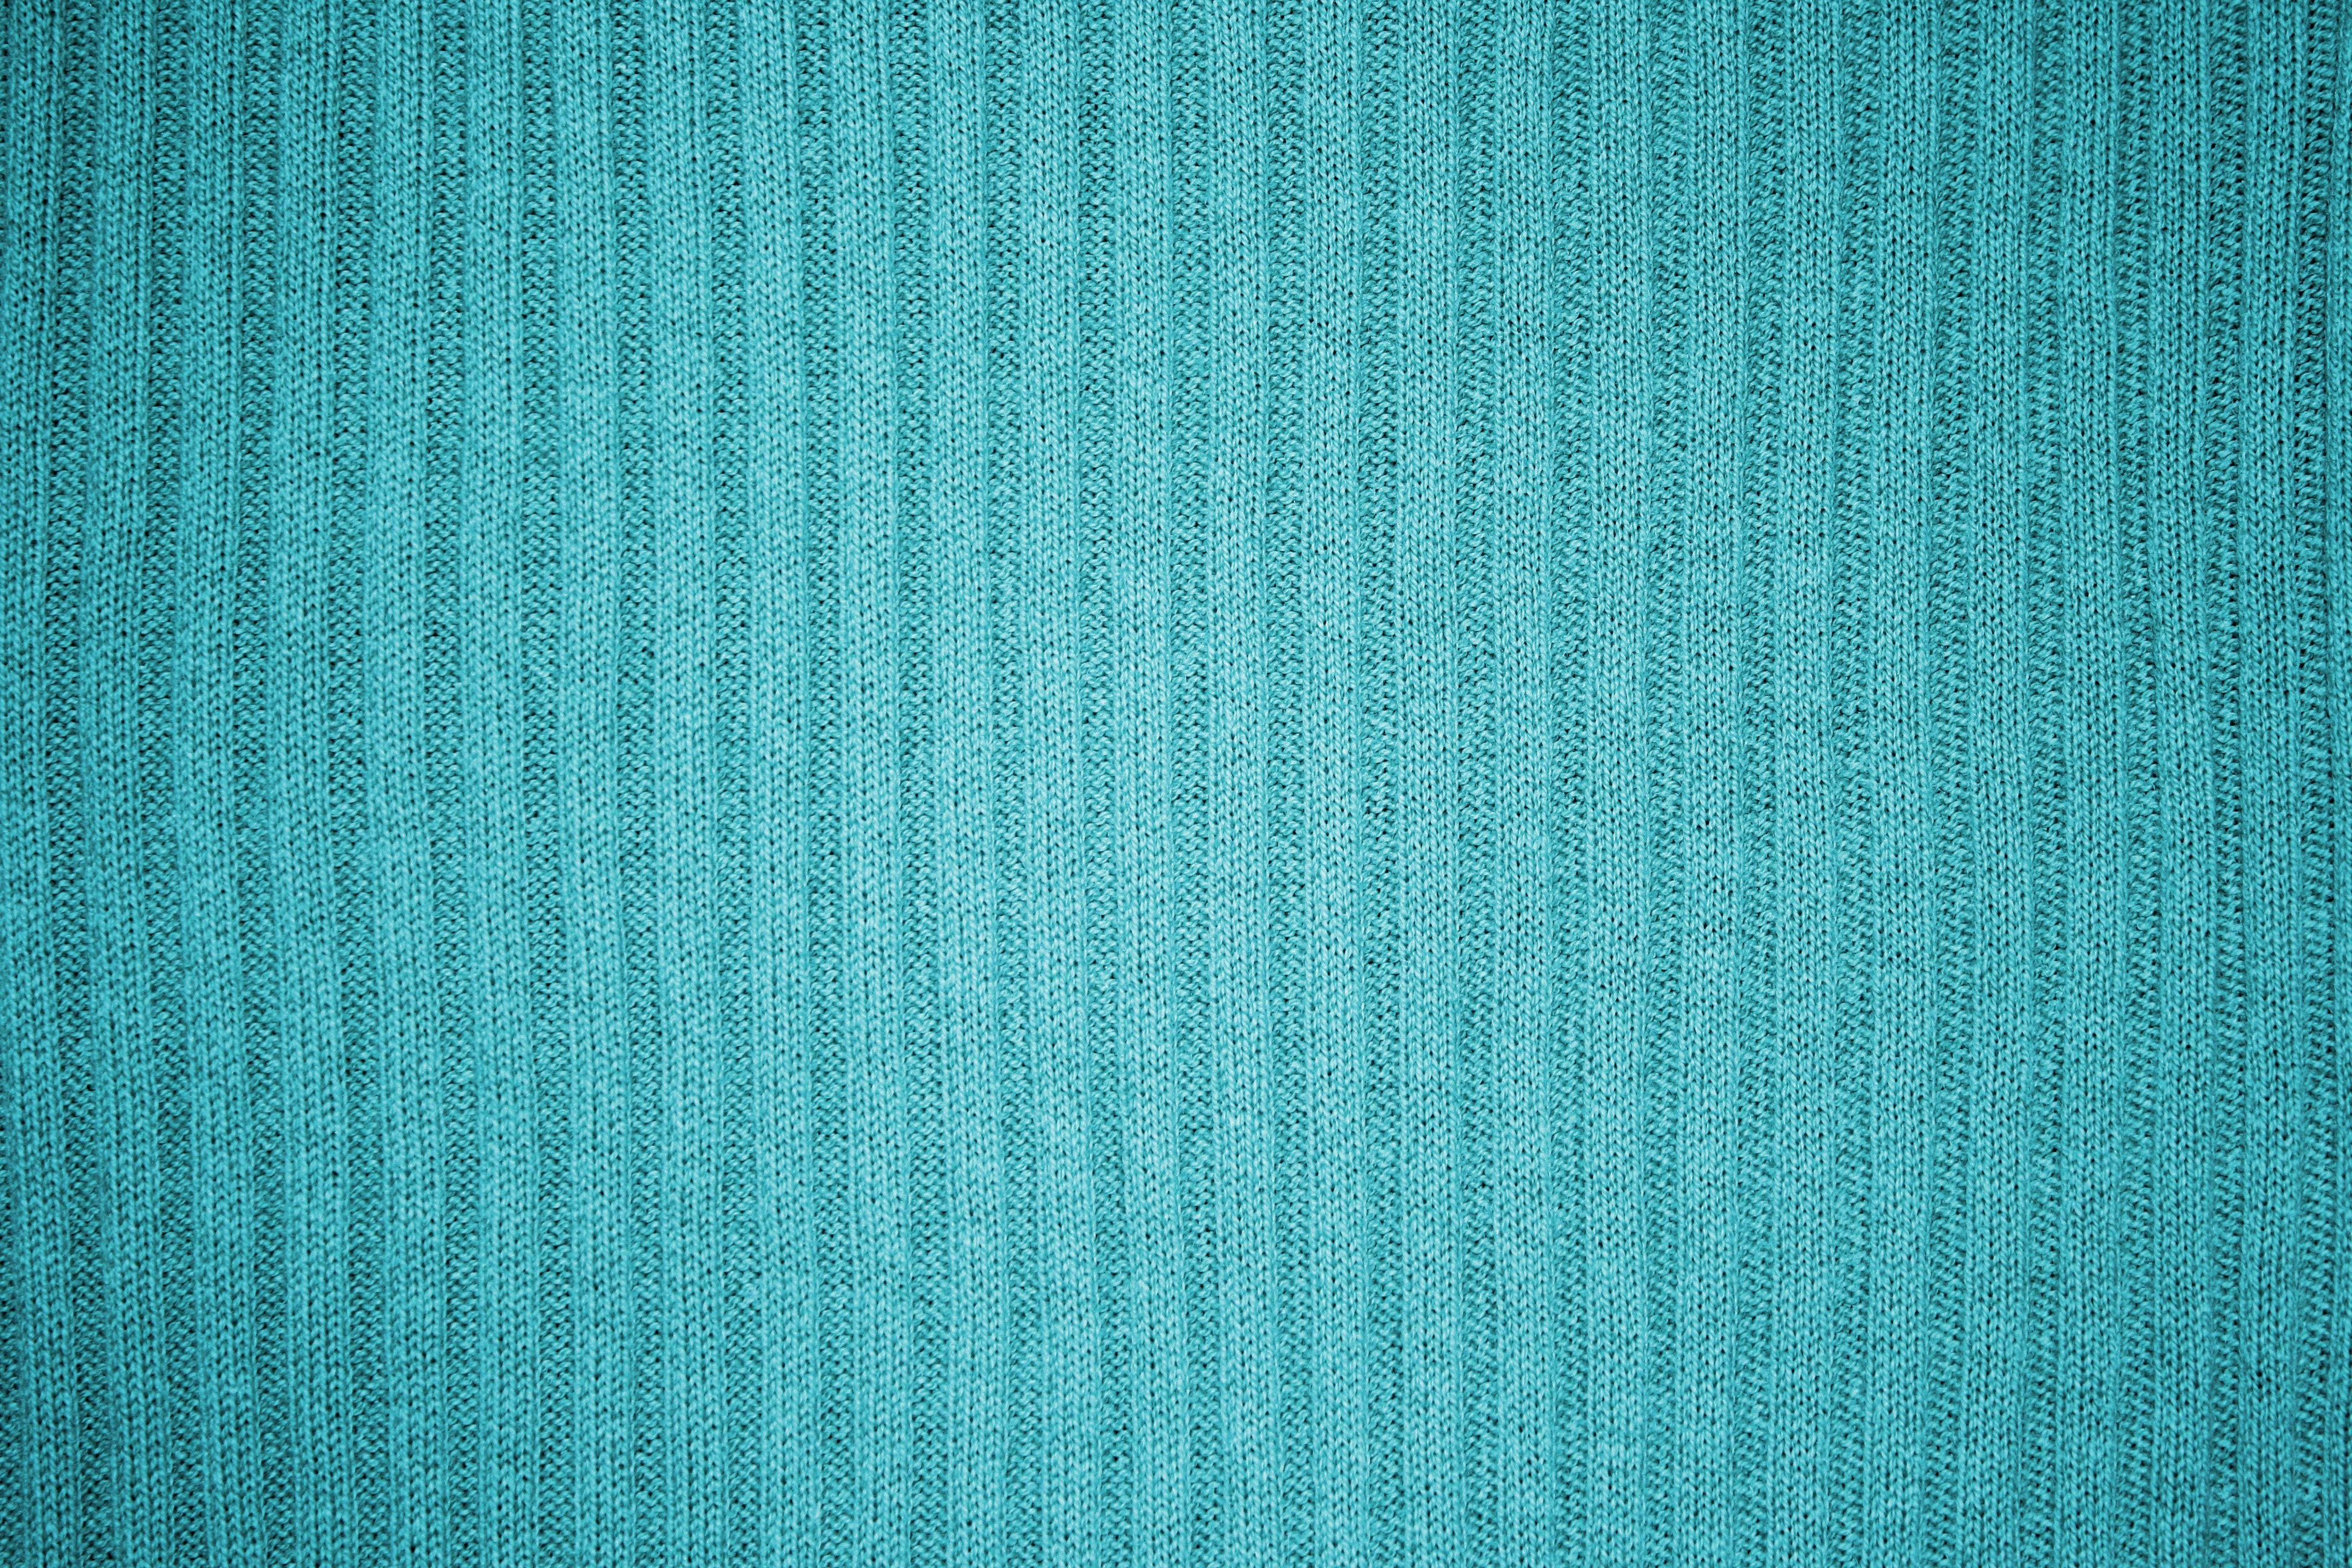 Teal or Turquoise Ribbed Knit Fabric Texture Picture Photograph 3888x2592